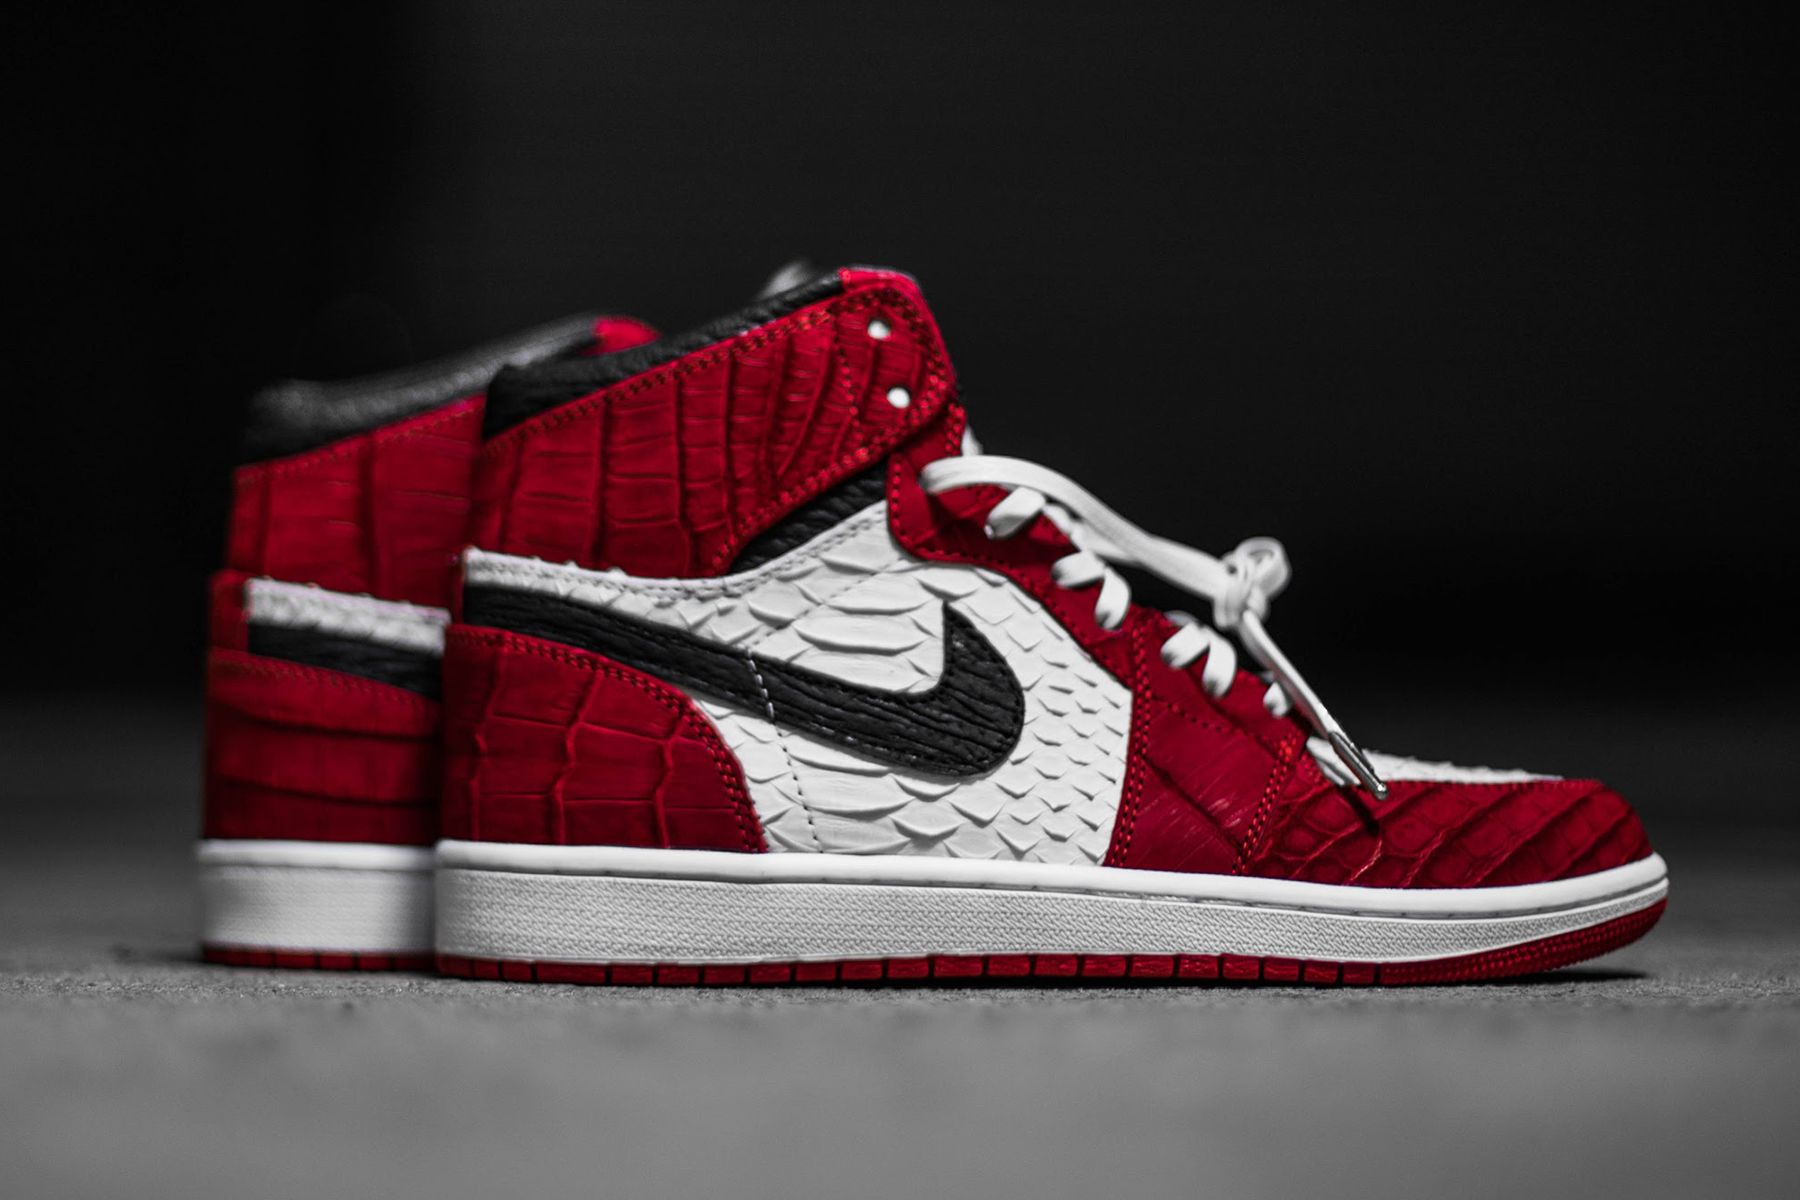 0462ab1e9a01cb The Shoe Surgeon Offers up Another Pair of Exotic Custom Air Jordan 1s.  Snakeskin kind of design on shirts  chopped pattern